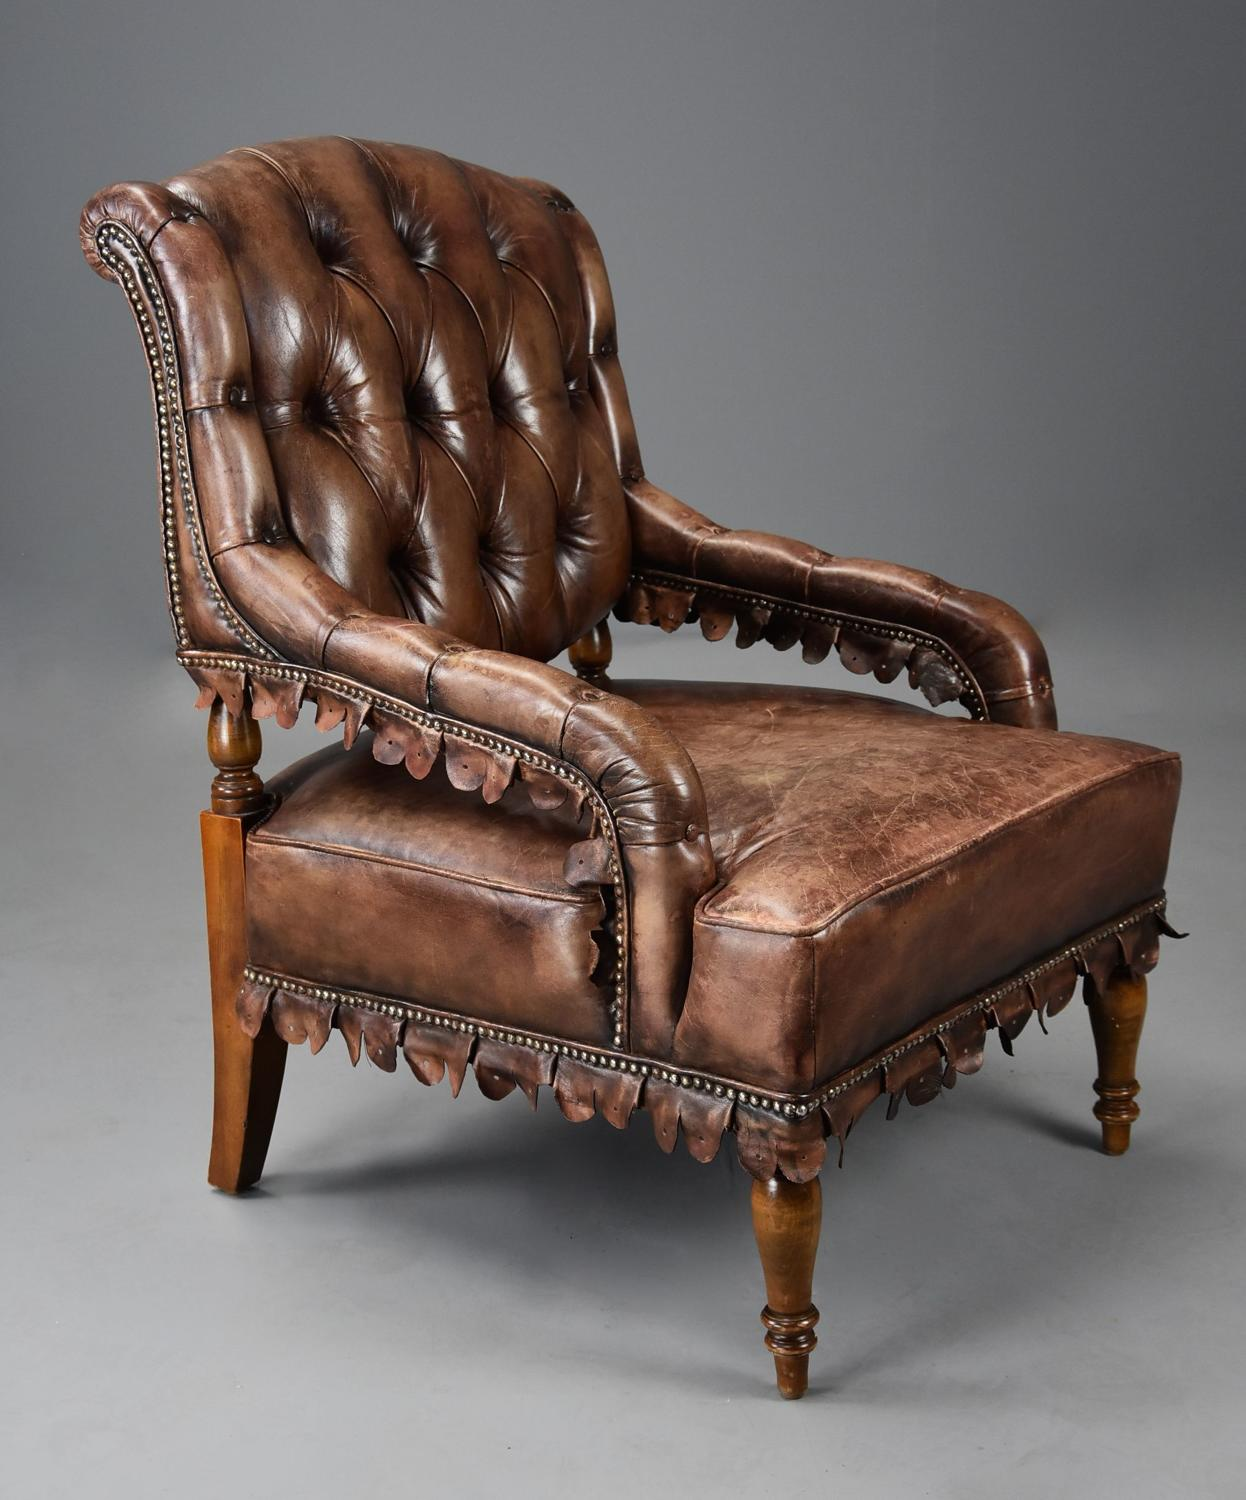 Highly decorative 1930's French brown leather open armchair